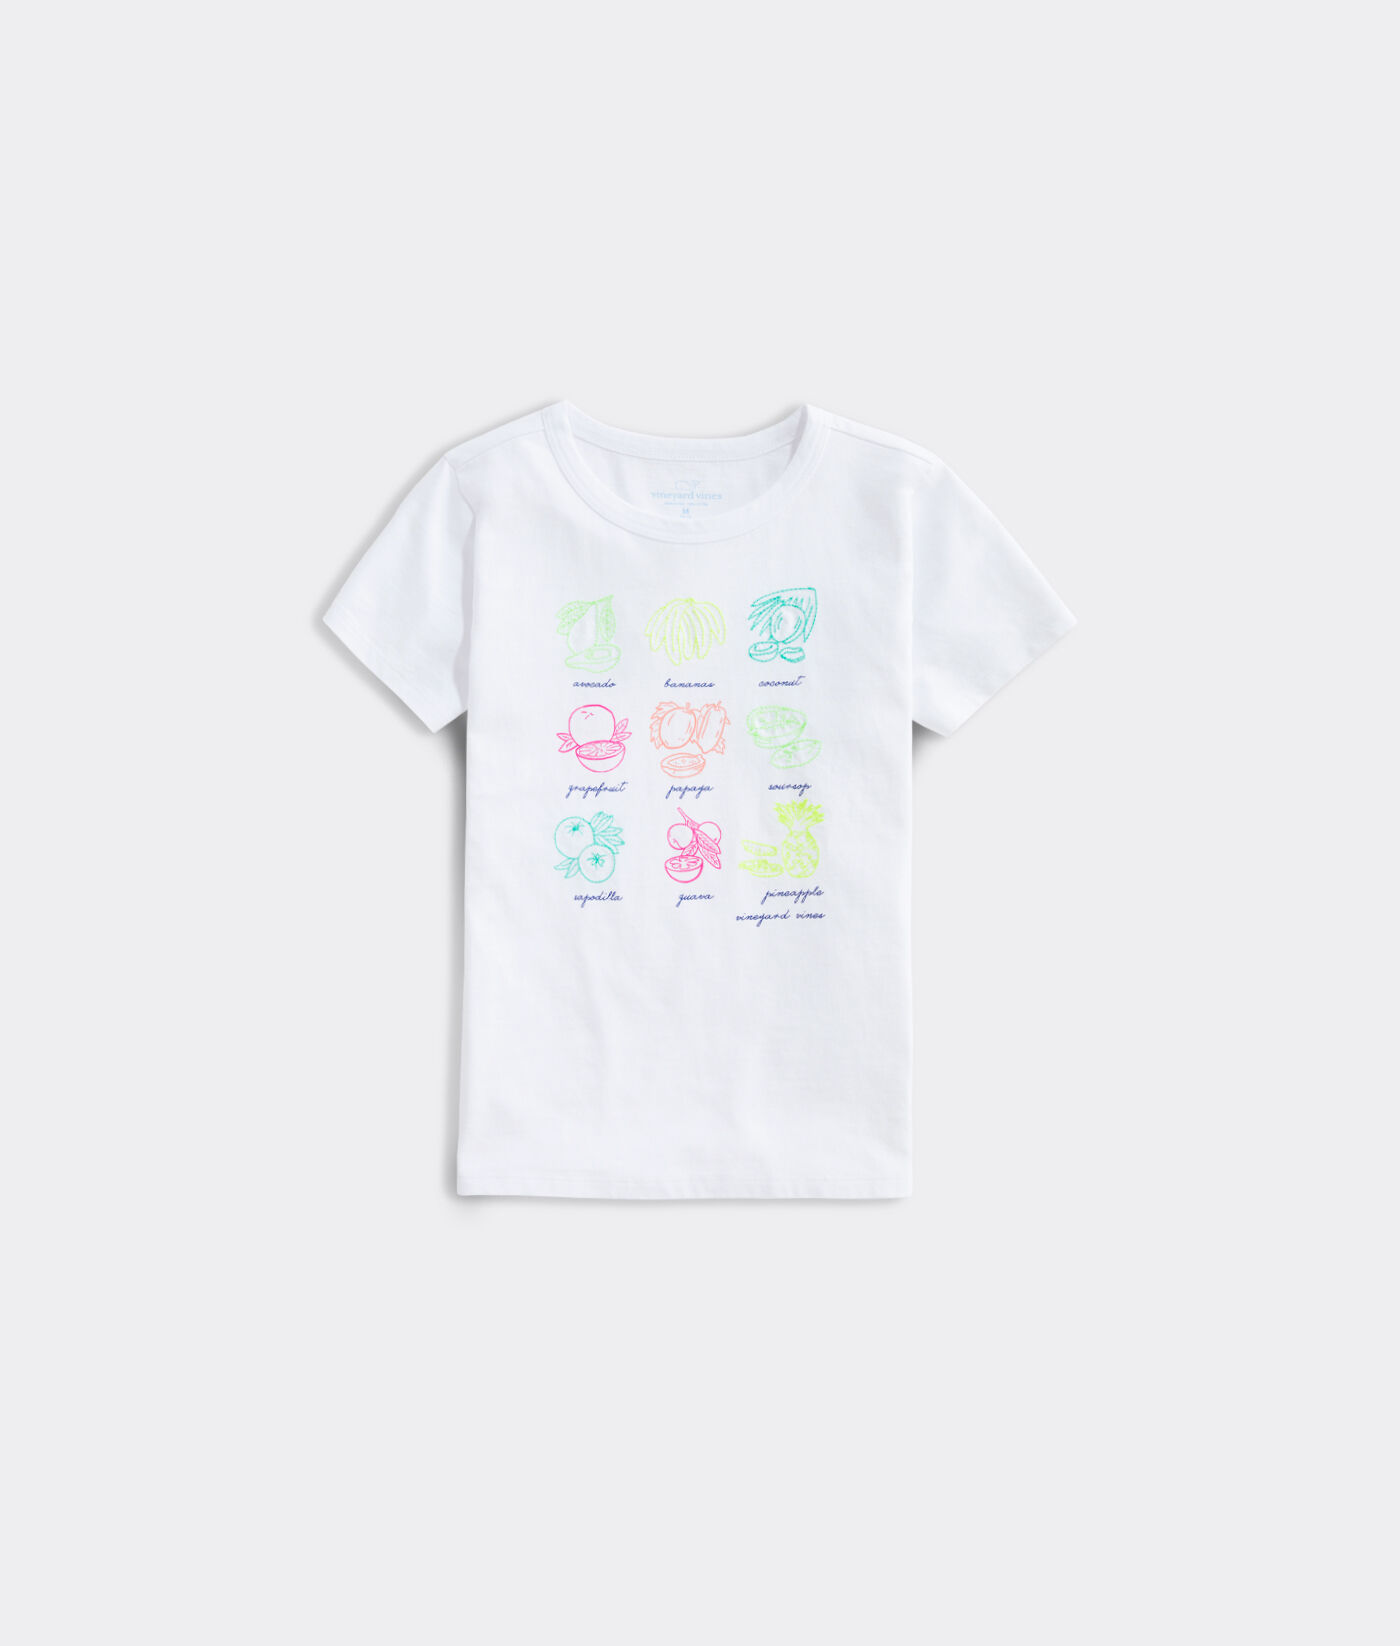 Life is Time Pass Flamingo Summer Basic Childrens Short Sleeve Tee Short T Shirts